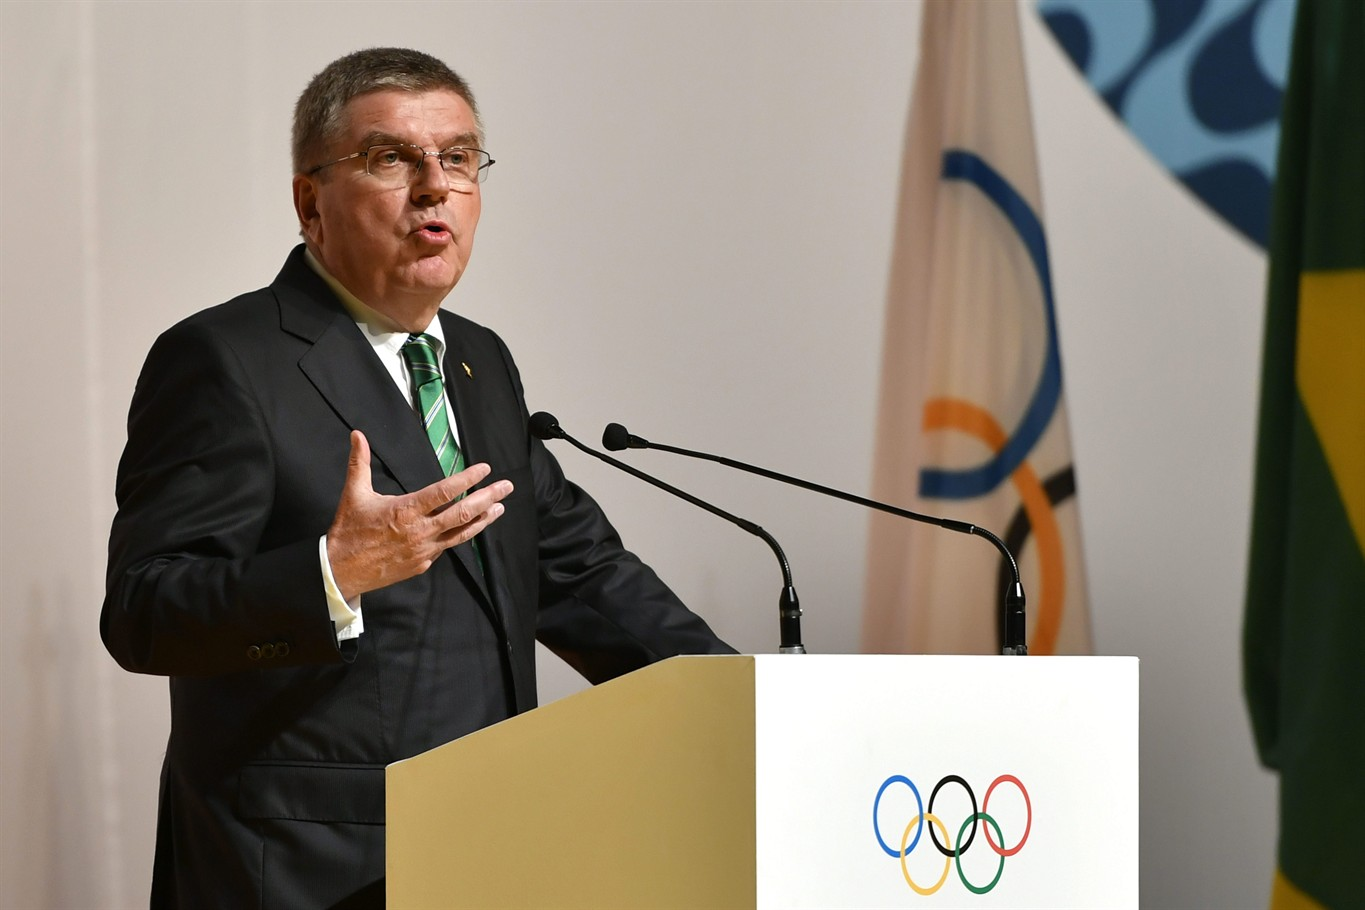 IOC members bash world anti-doping body over Russia scandal